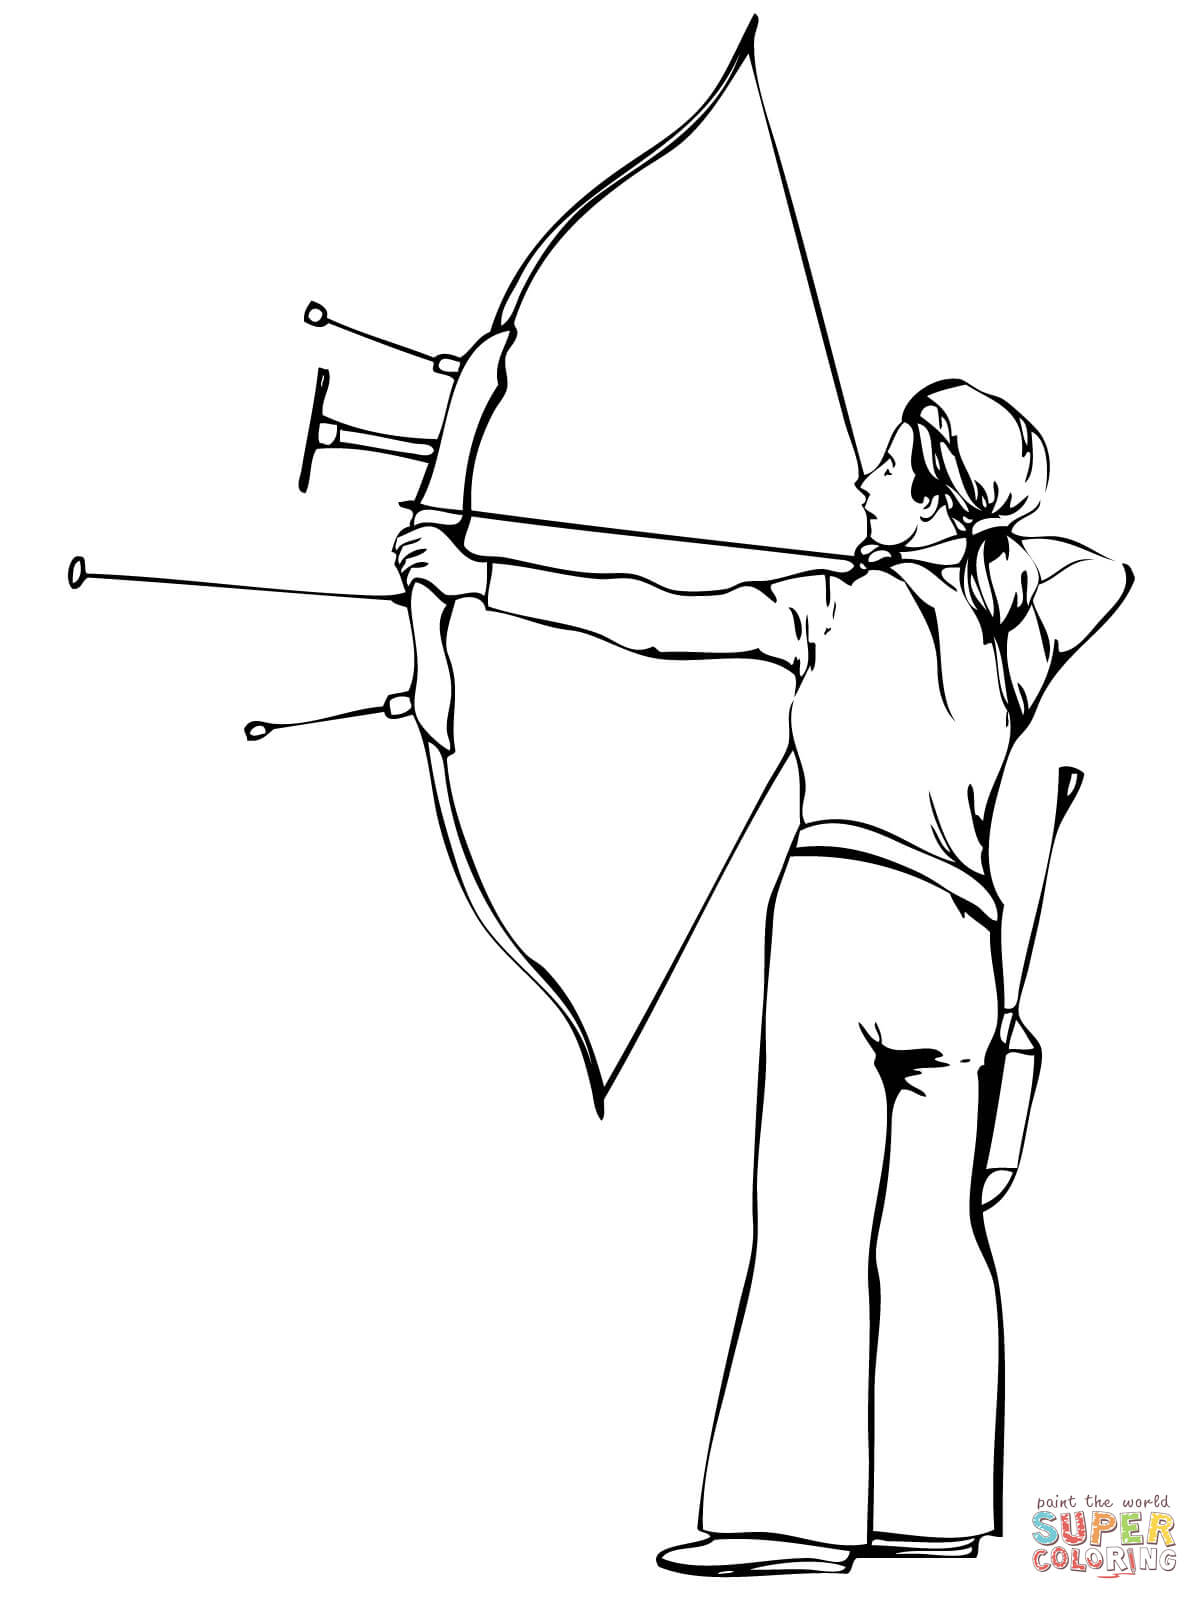 1200x1600 Shooting Recurve Bow Coloring Page Free Printable Coloring Pages